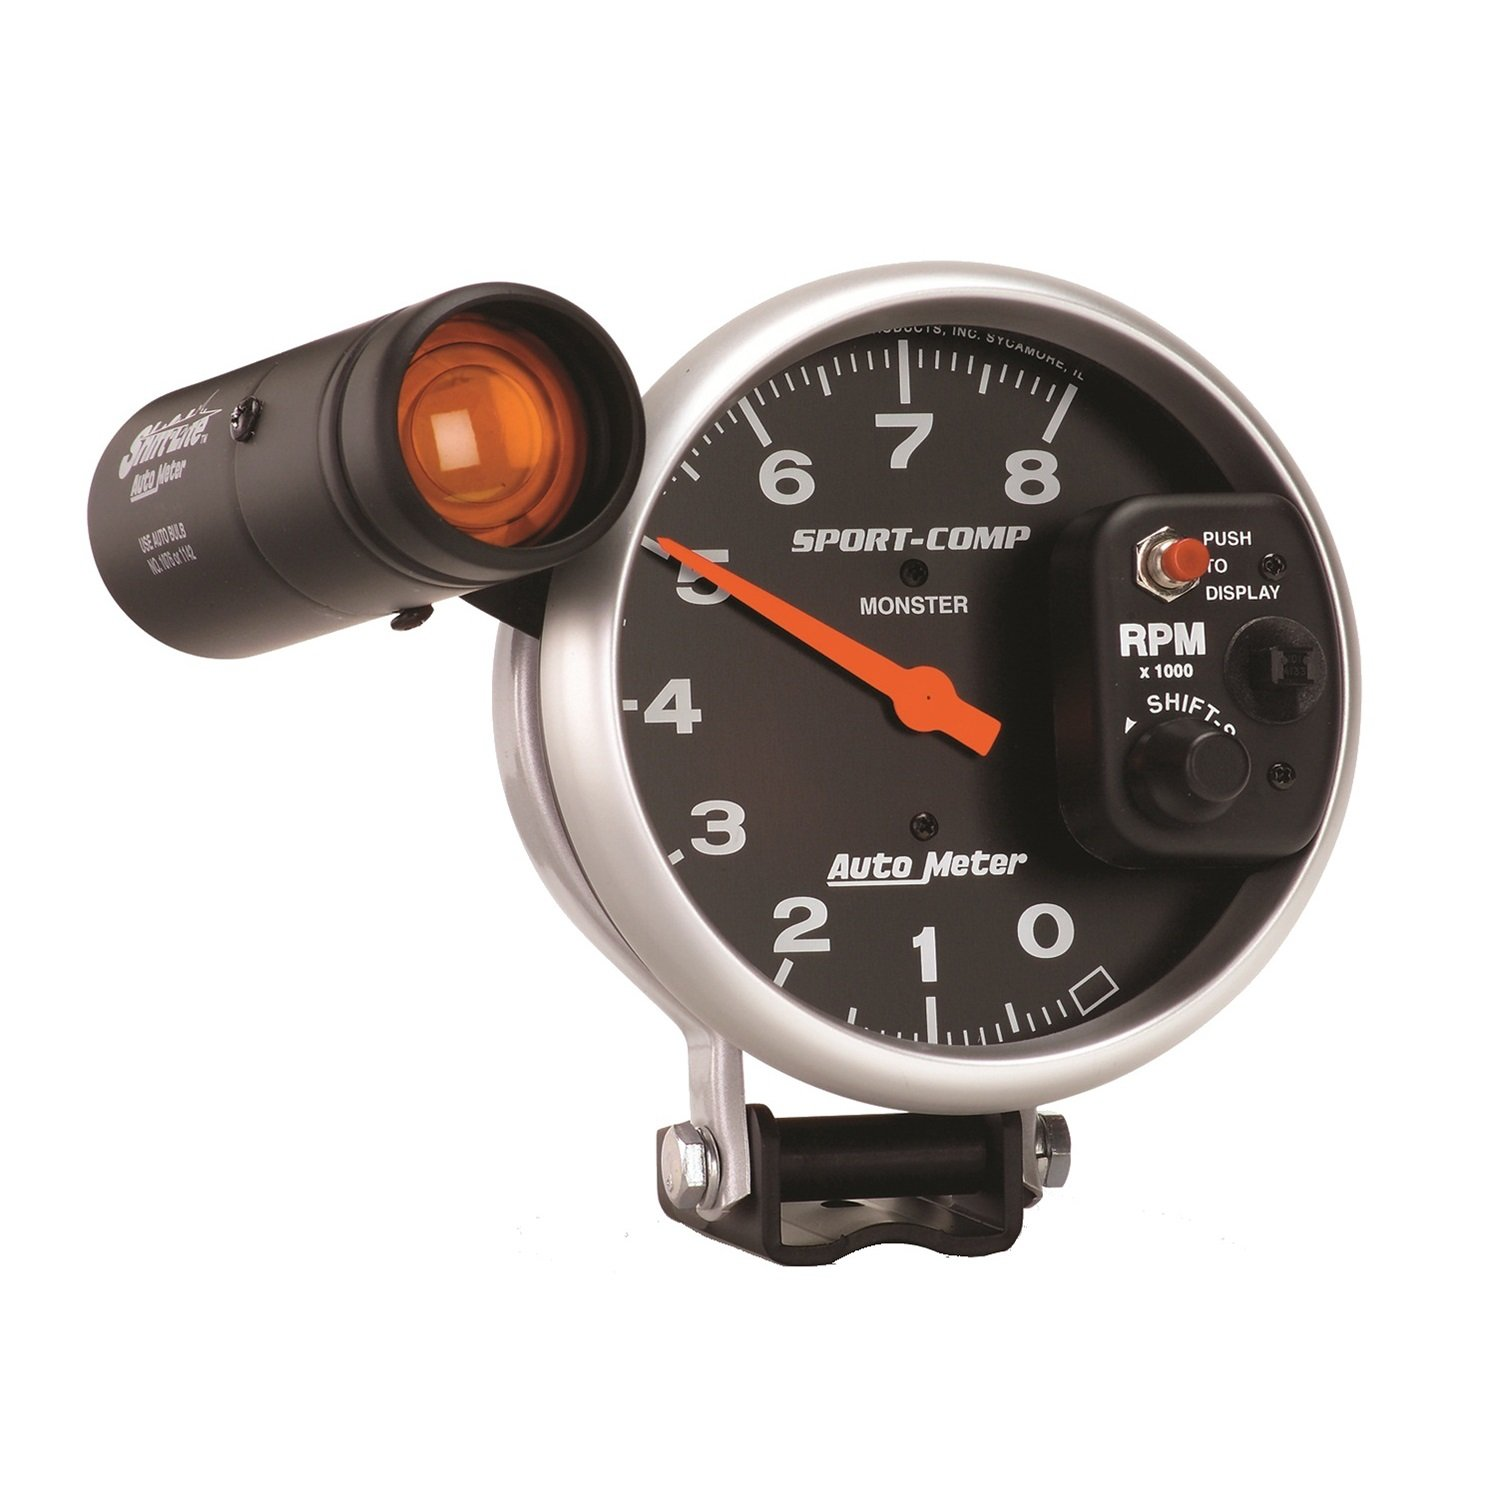 Auto Meter 3905 Sport-Comp Shift-Lite Tachometer by Auto Meter (Image #1)